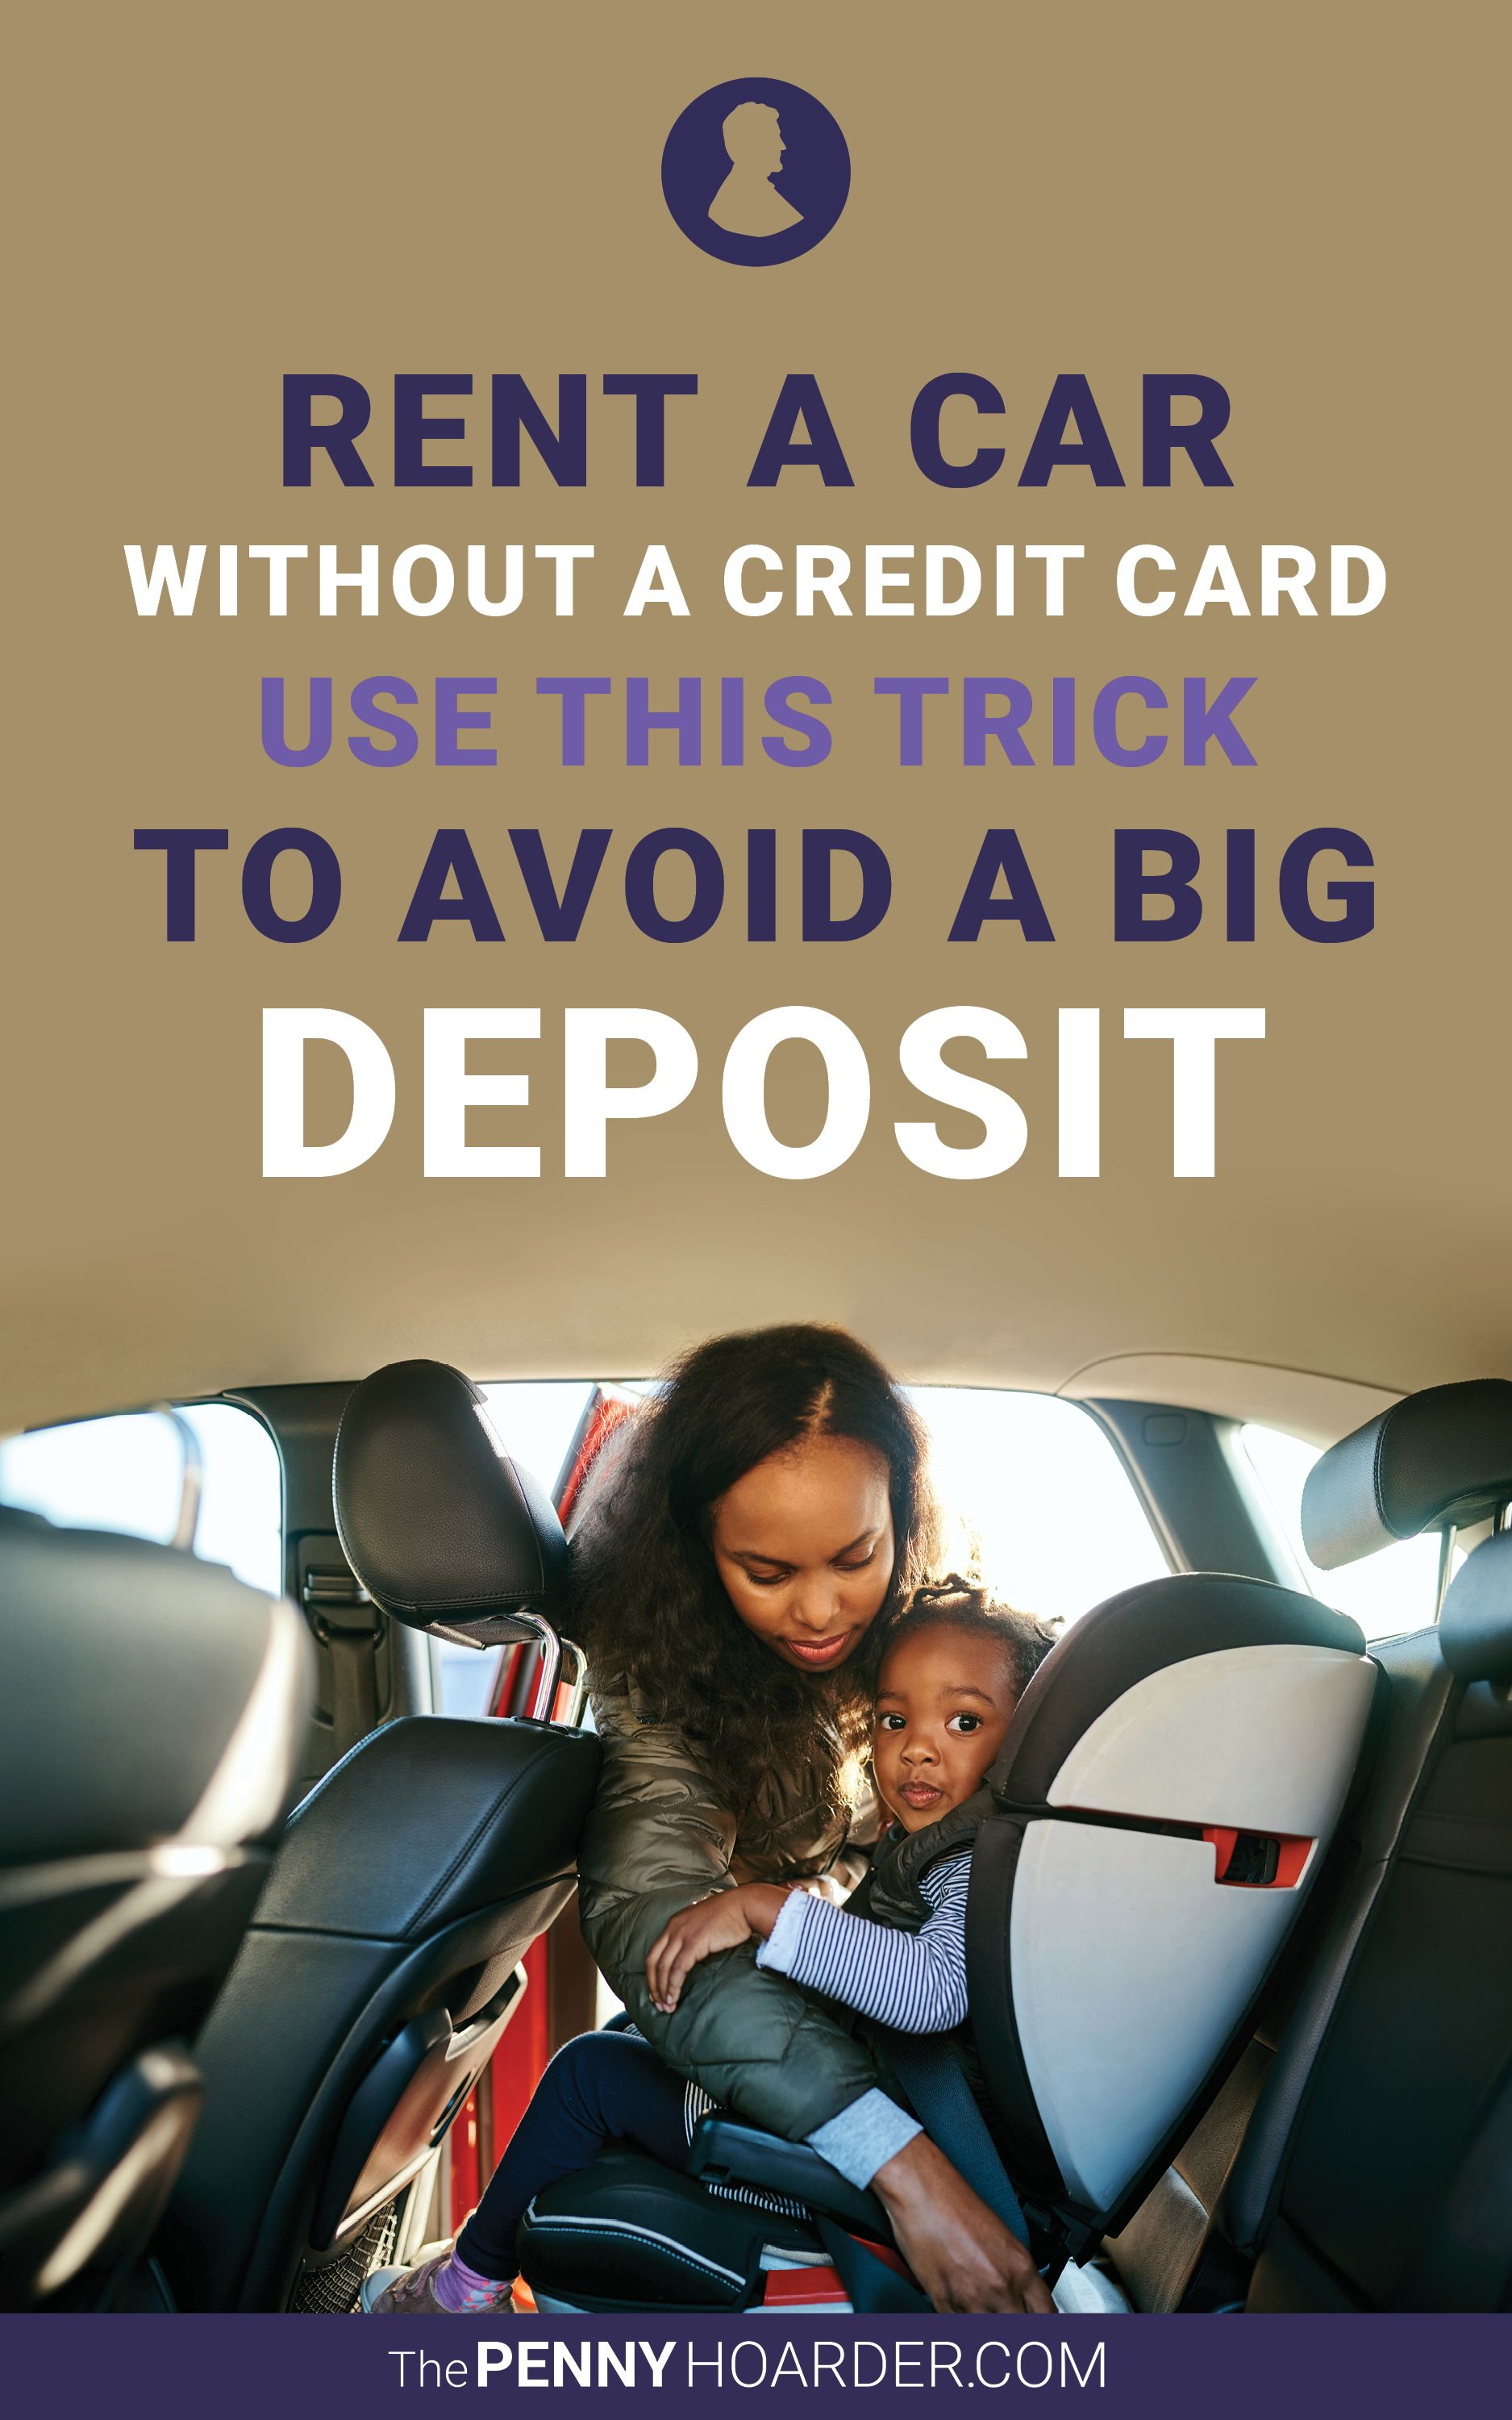 How To Rent A Car Without A Credit Card In 2020 Rent A Car Credit Card Rent